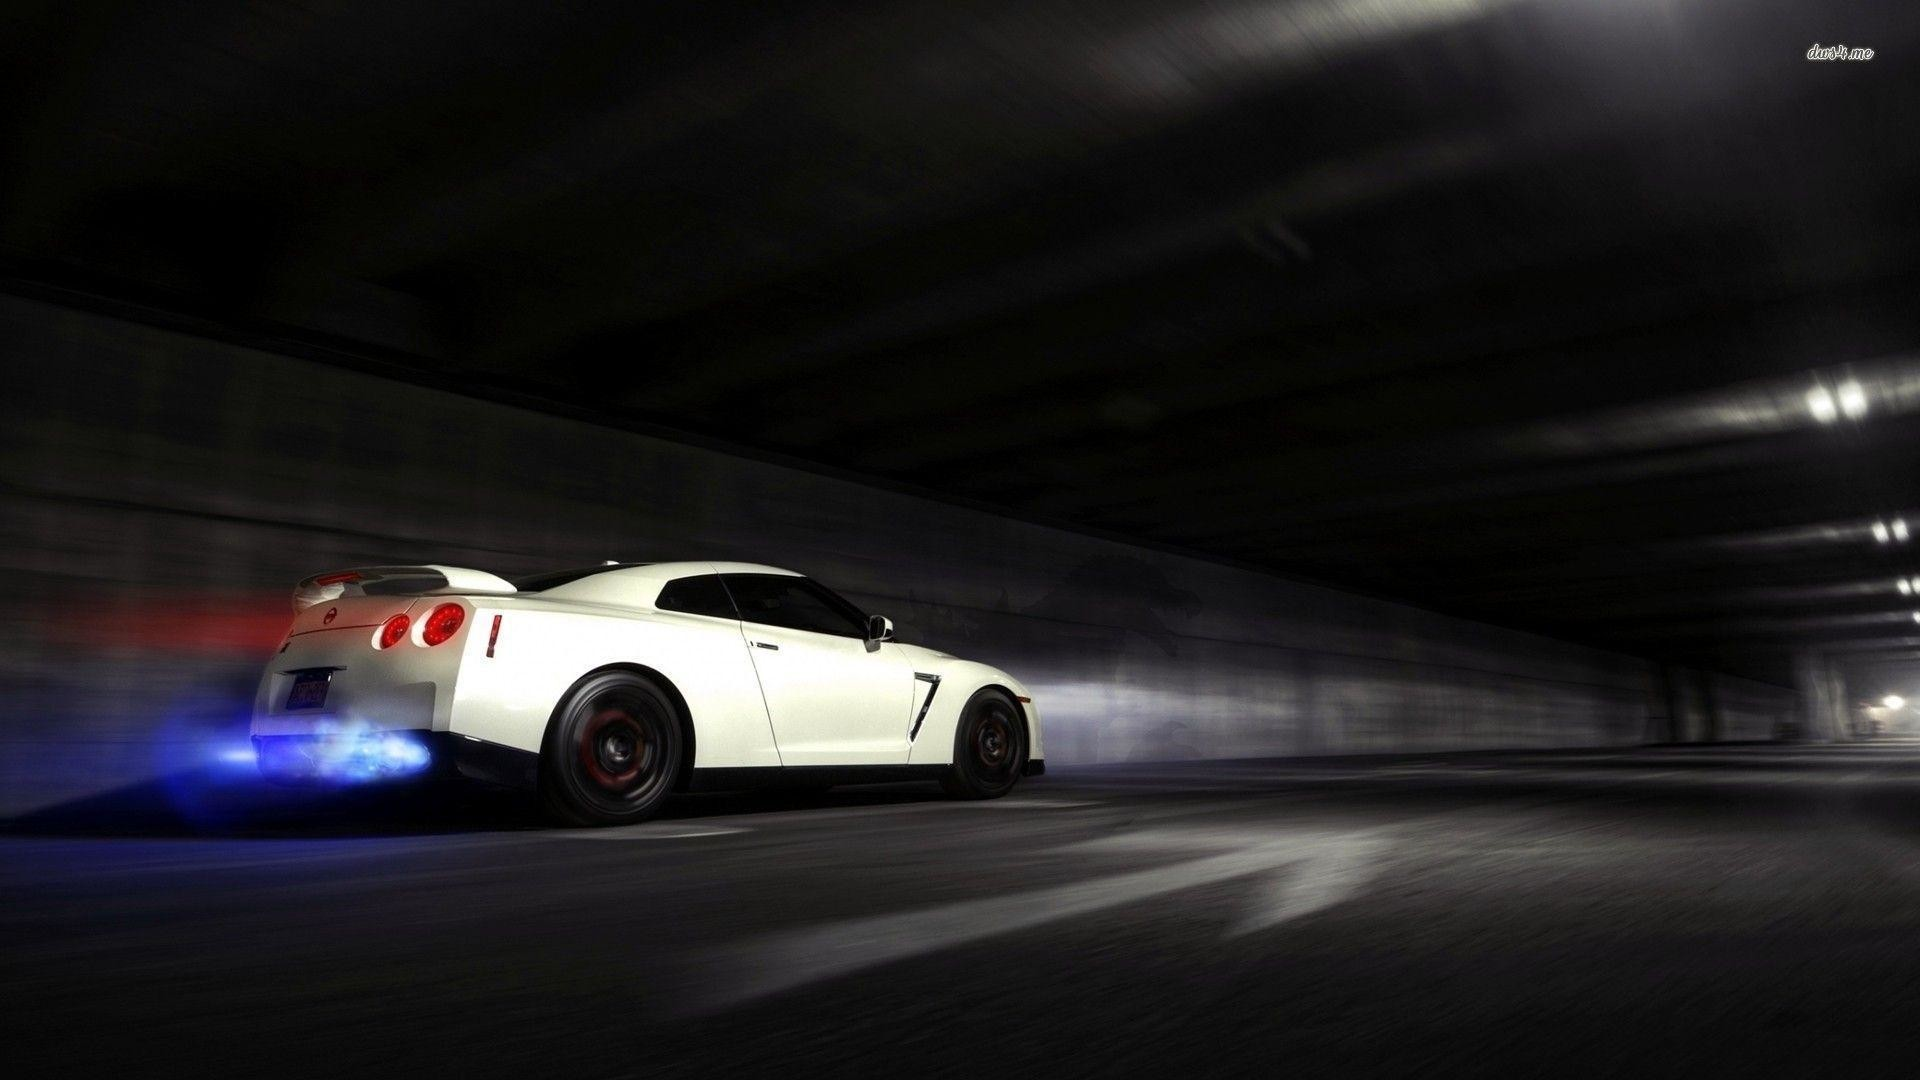 Nissan Skyline GT-R wallpaper – Car wallpapers – #